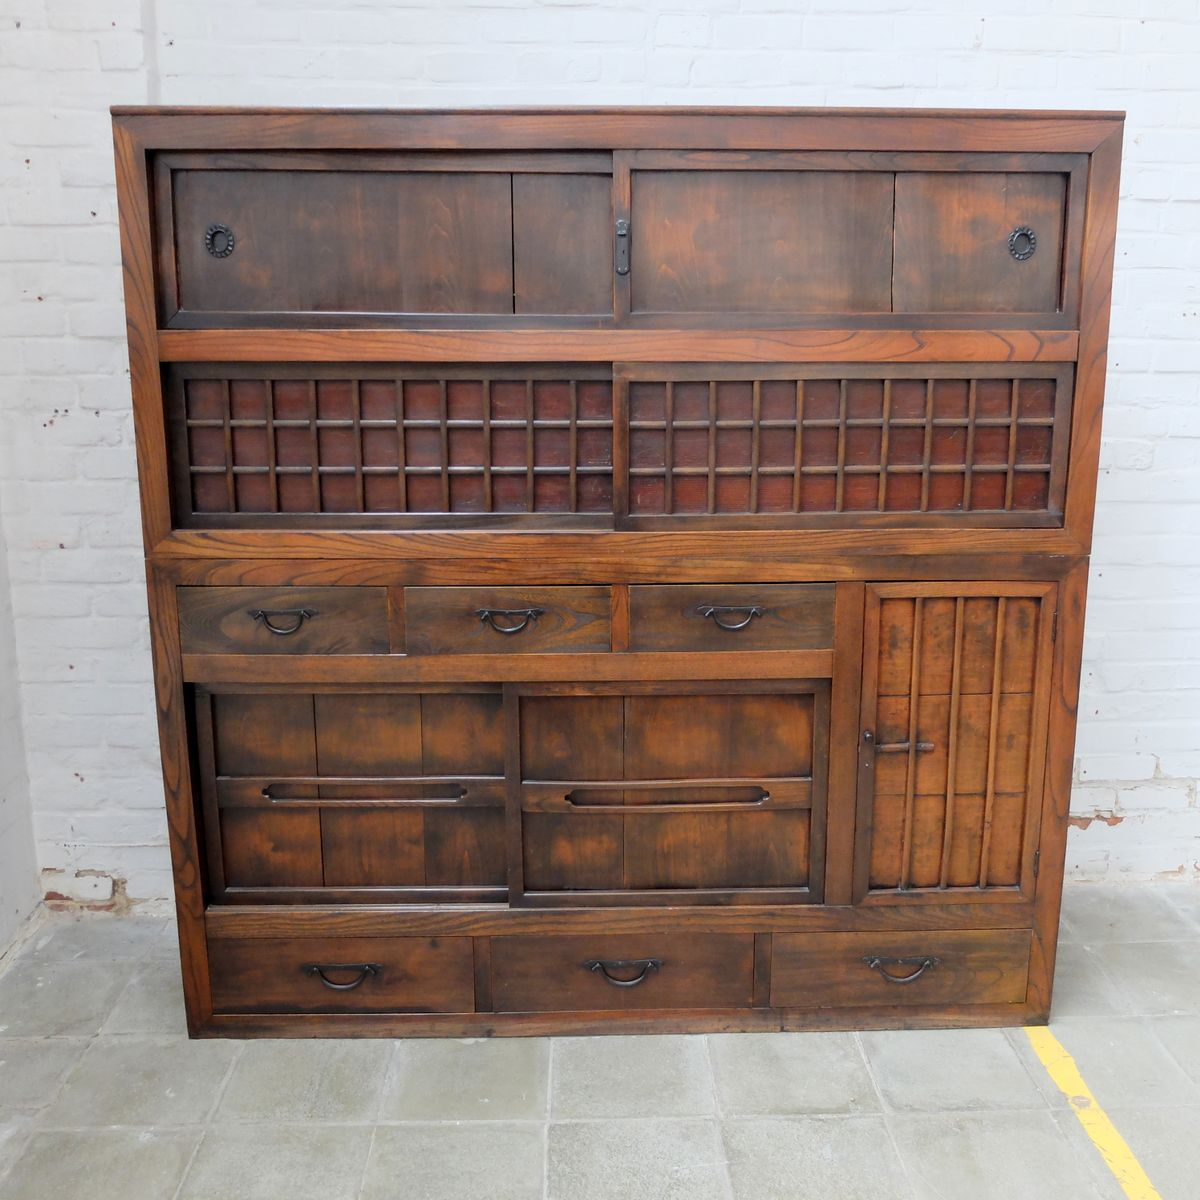 Antique Japanese Kitchen Cabinet - Antique Japanese Kitchen Cabinet For Sale At Pamono